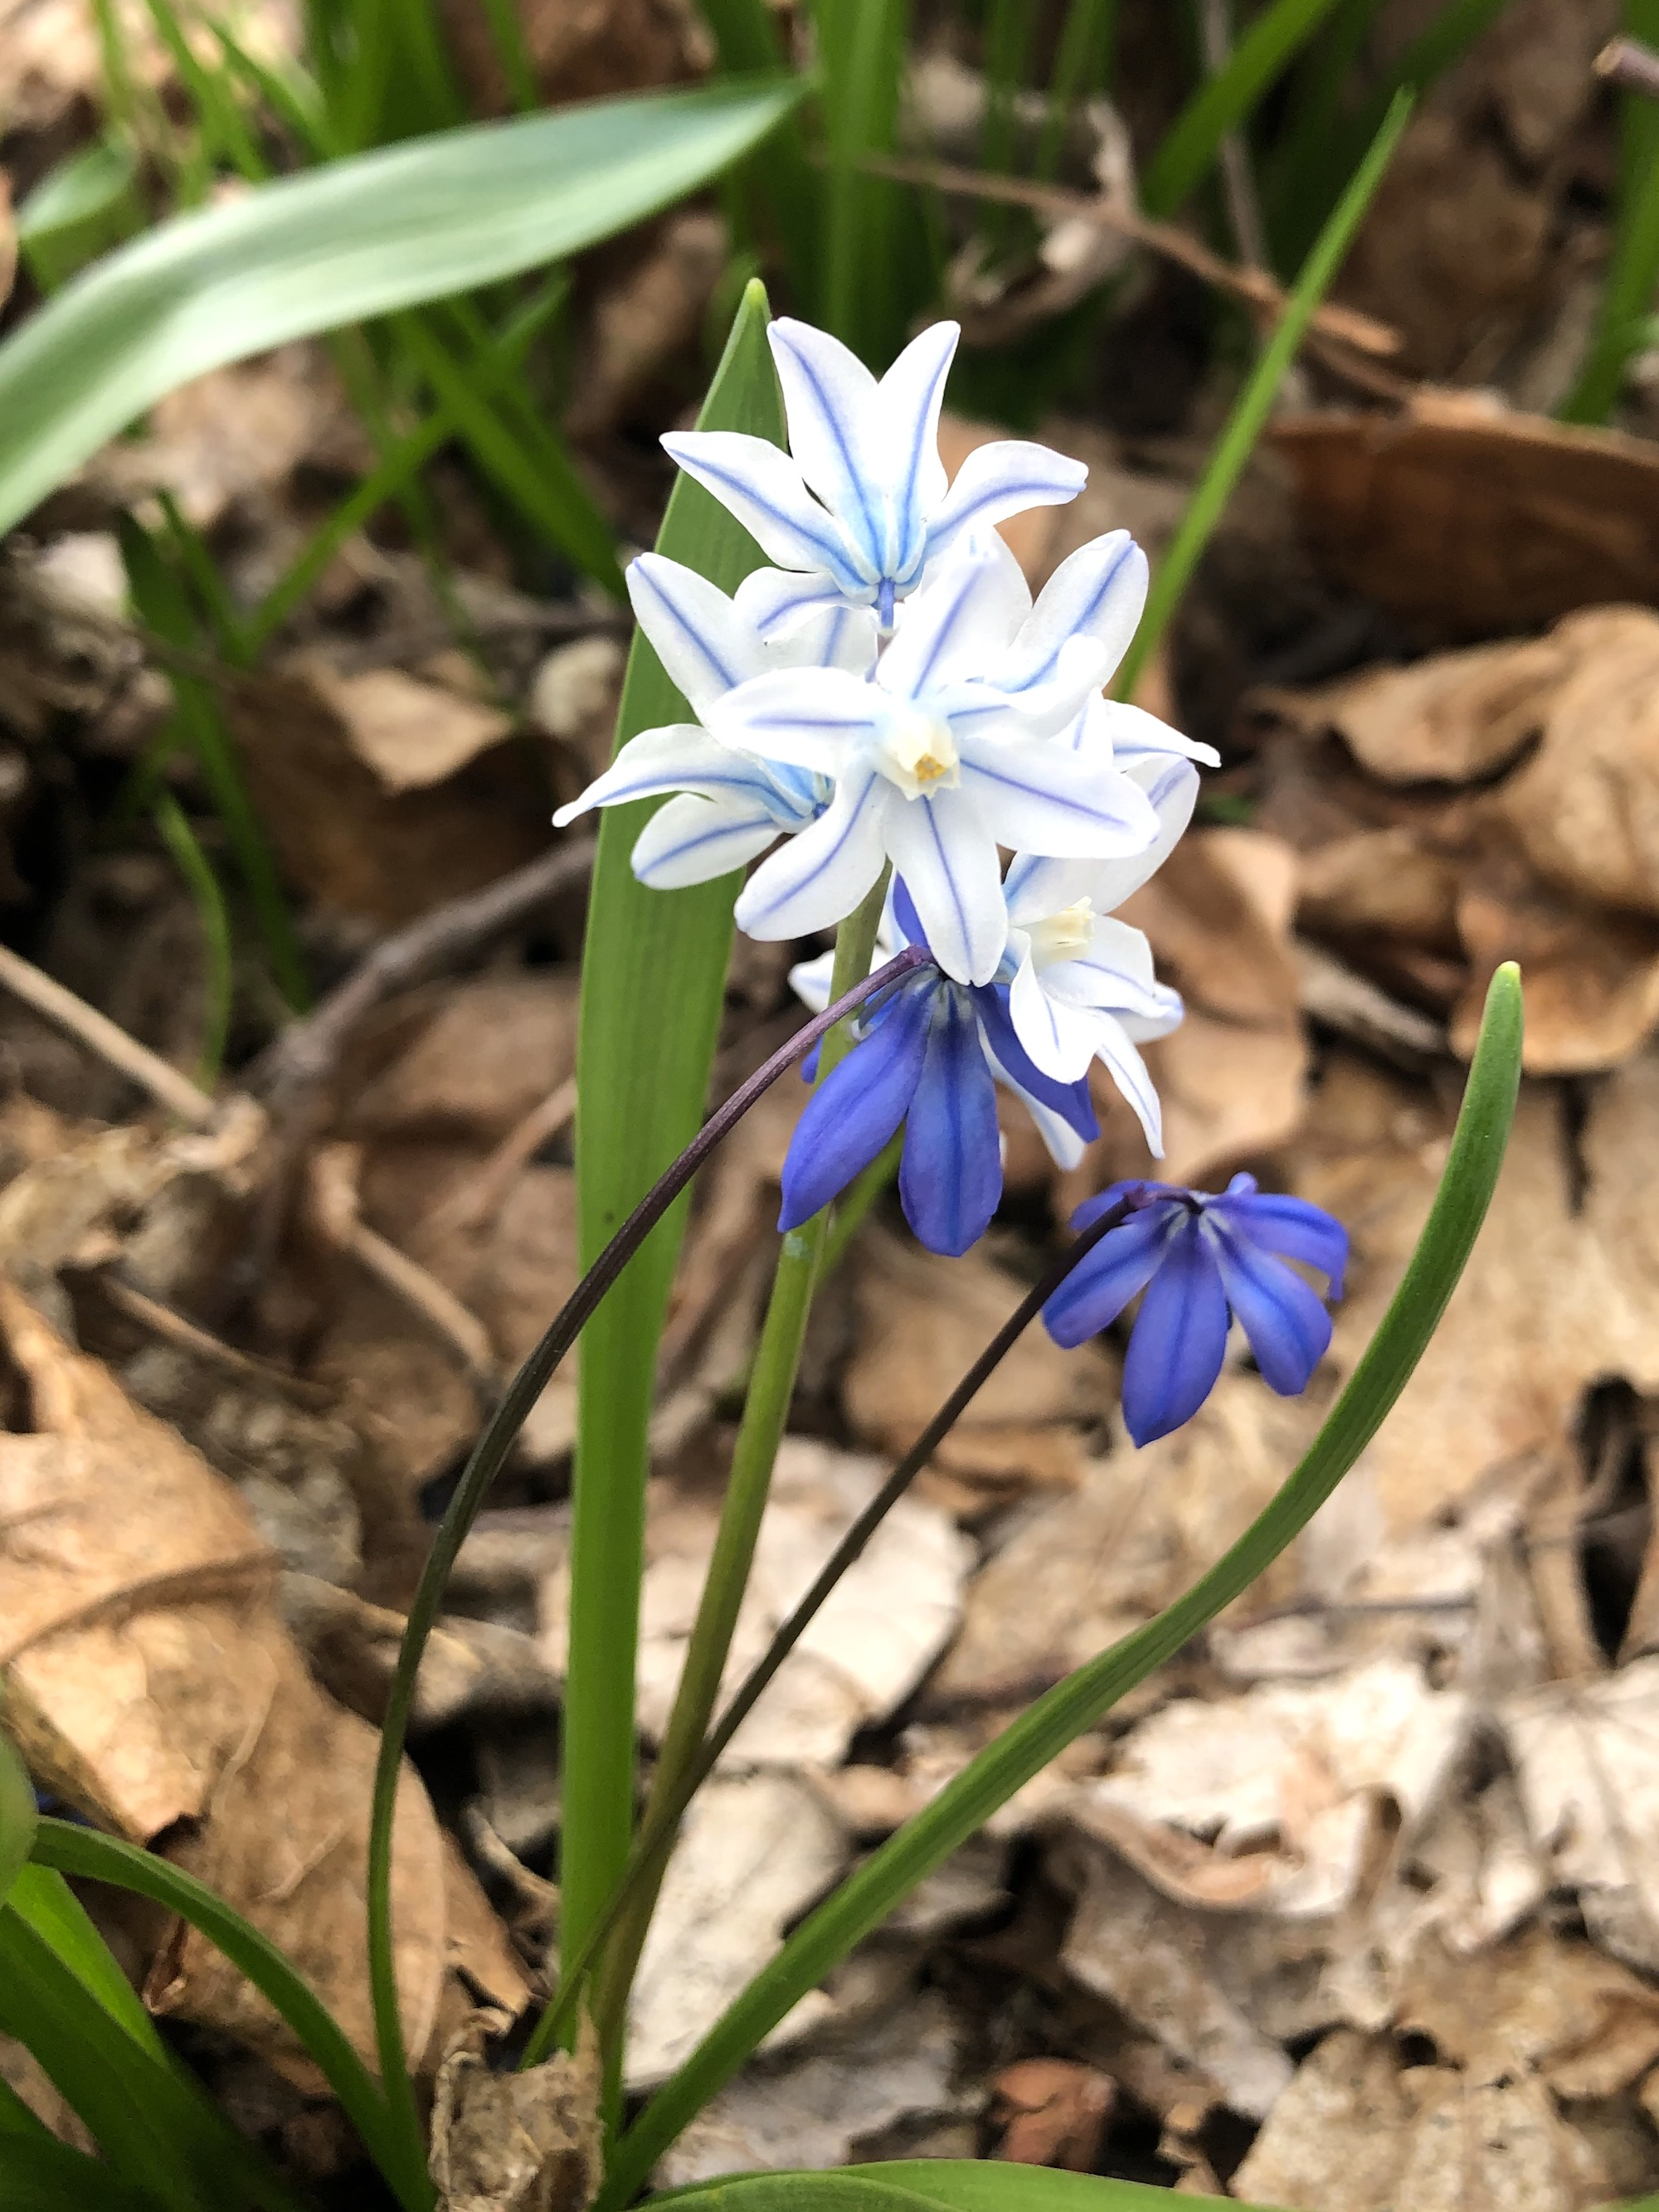 Striped Squill in woods near the Sycamore tree on Arbor Drive in Madison, Wisconsin on April 6, 2021.